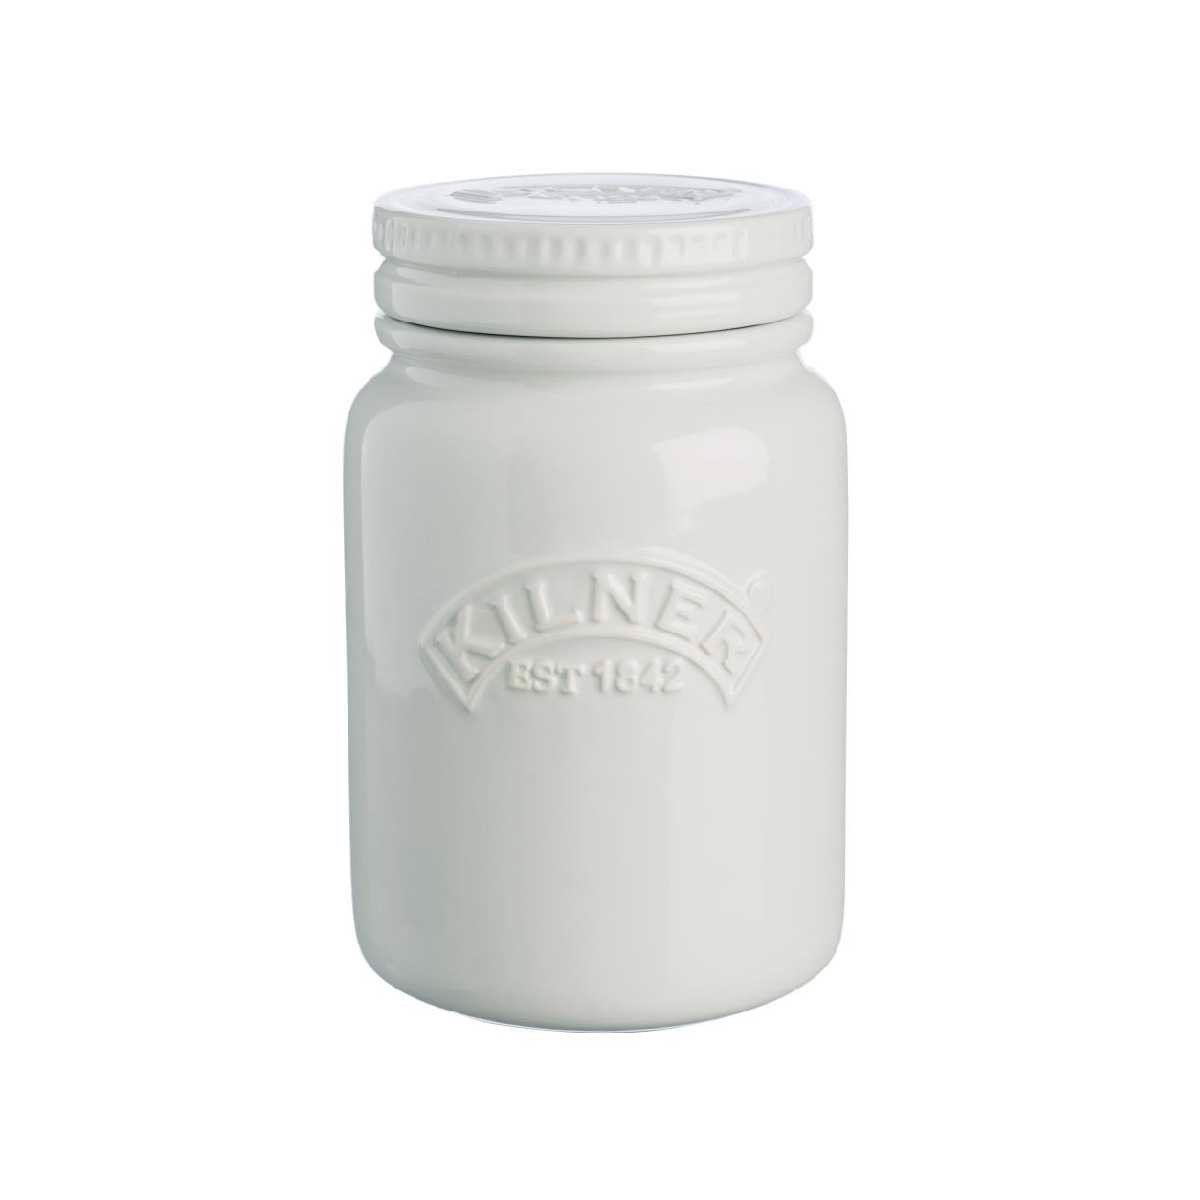 Kilner - Ceramic push - Moonlight Grey - 0.6L